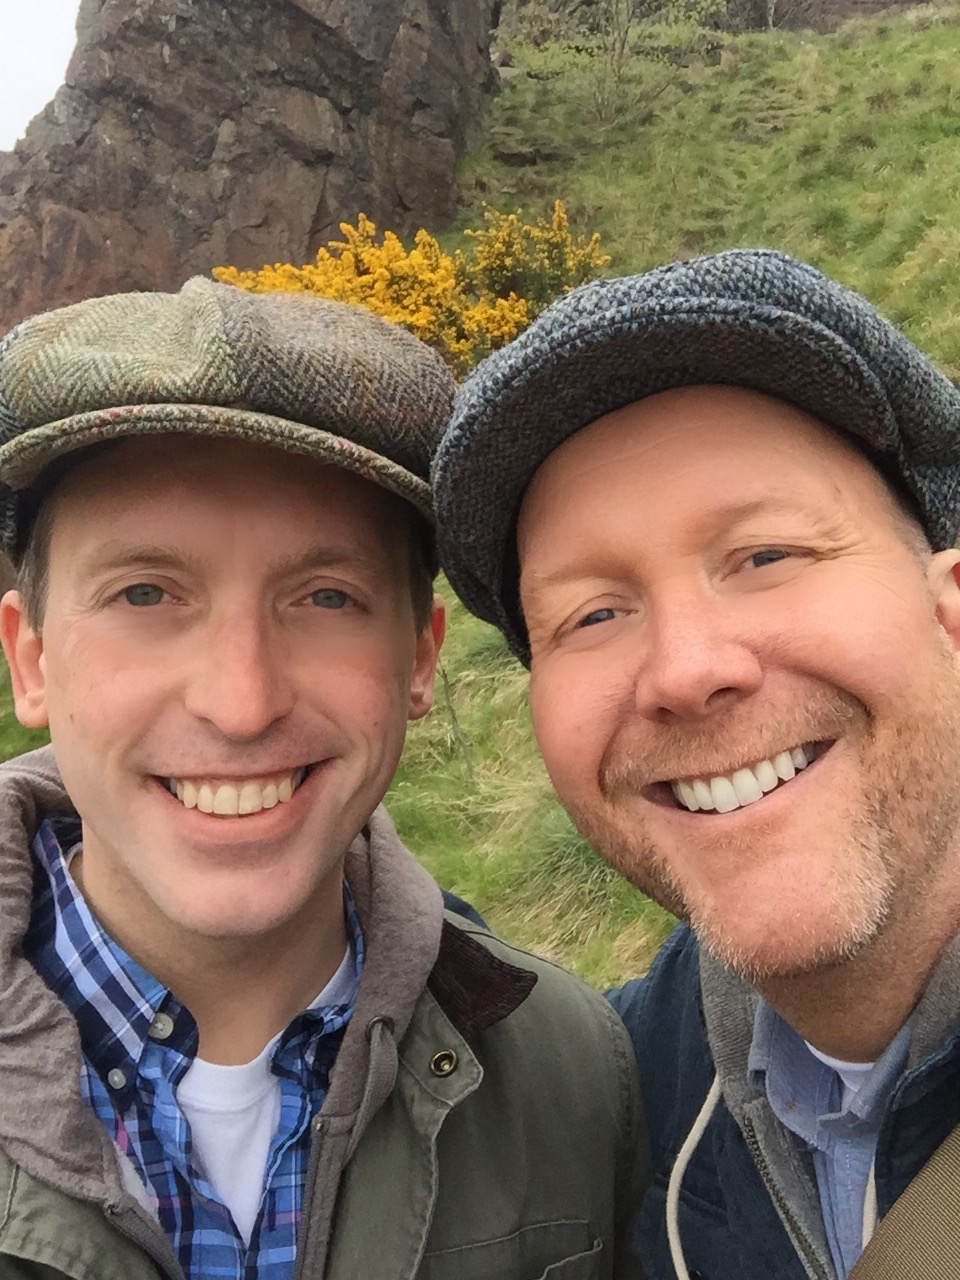 A selfie in the Scottish Highlands